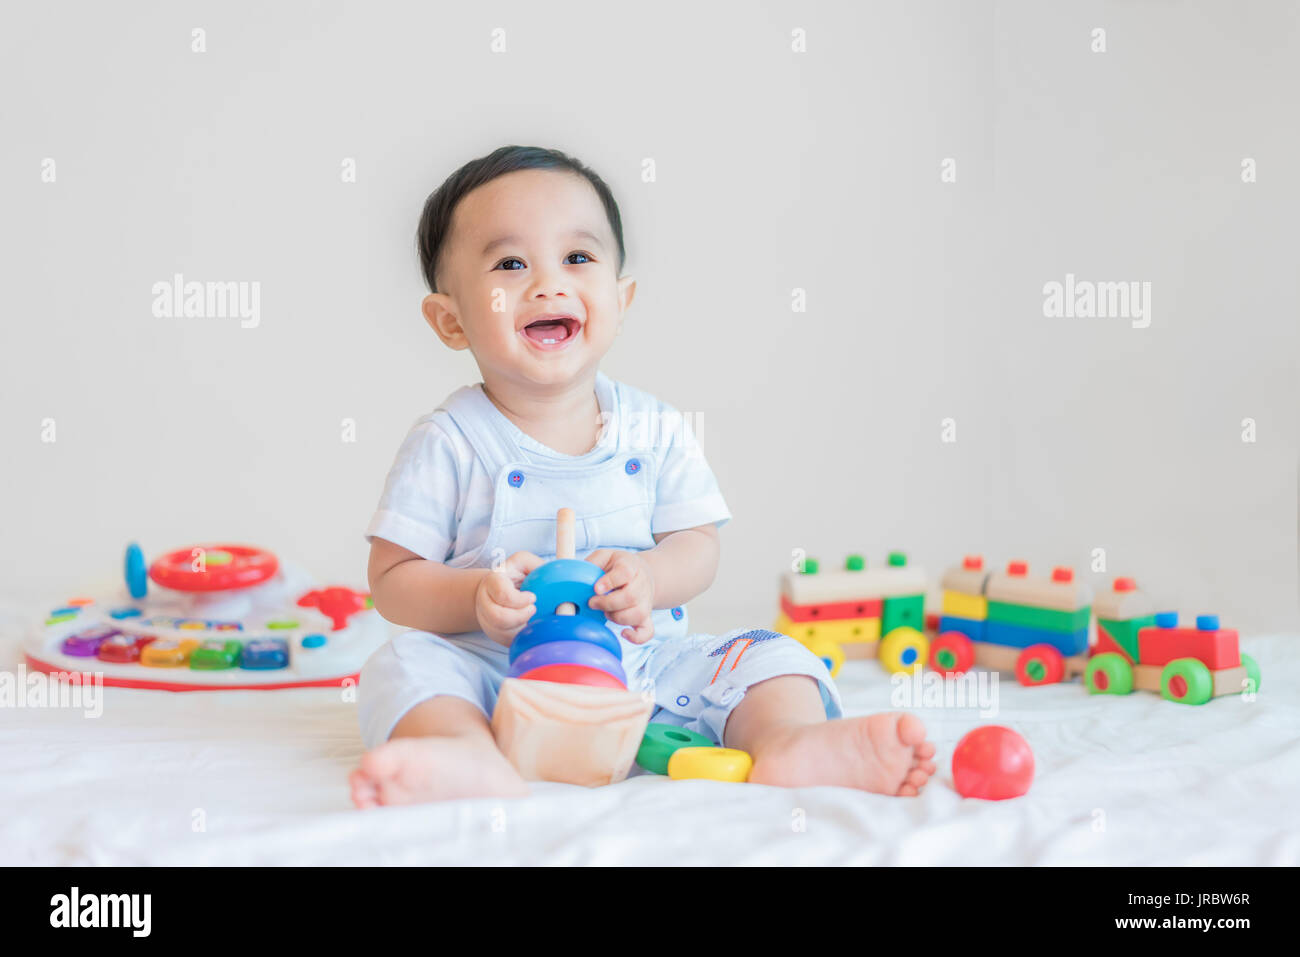 Adorable Asian baby boy 9 months sitting on bed and playing with color developmental toys at home. - Stock Image